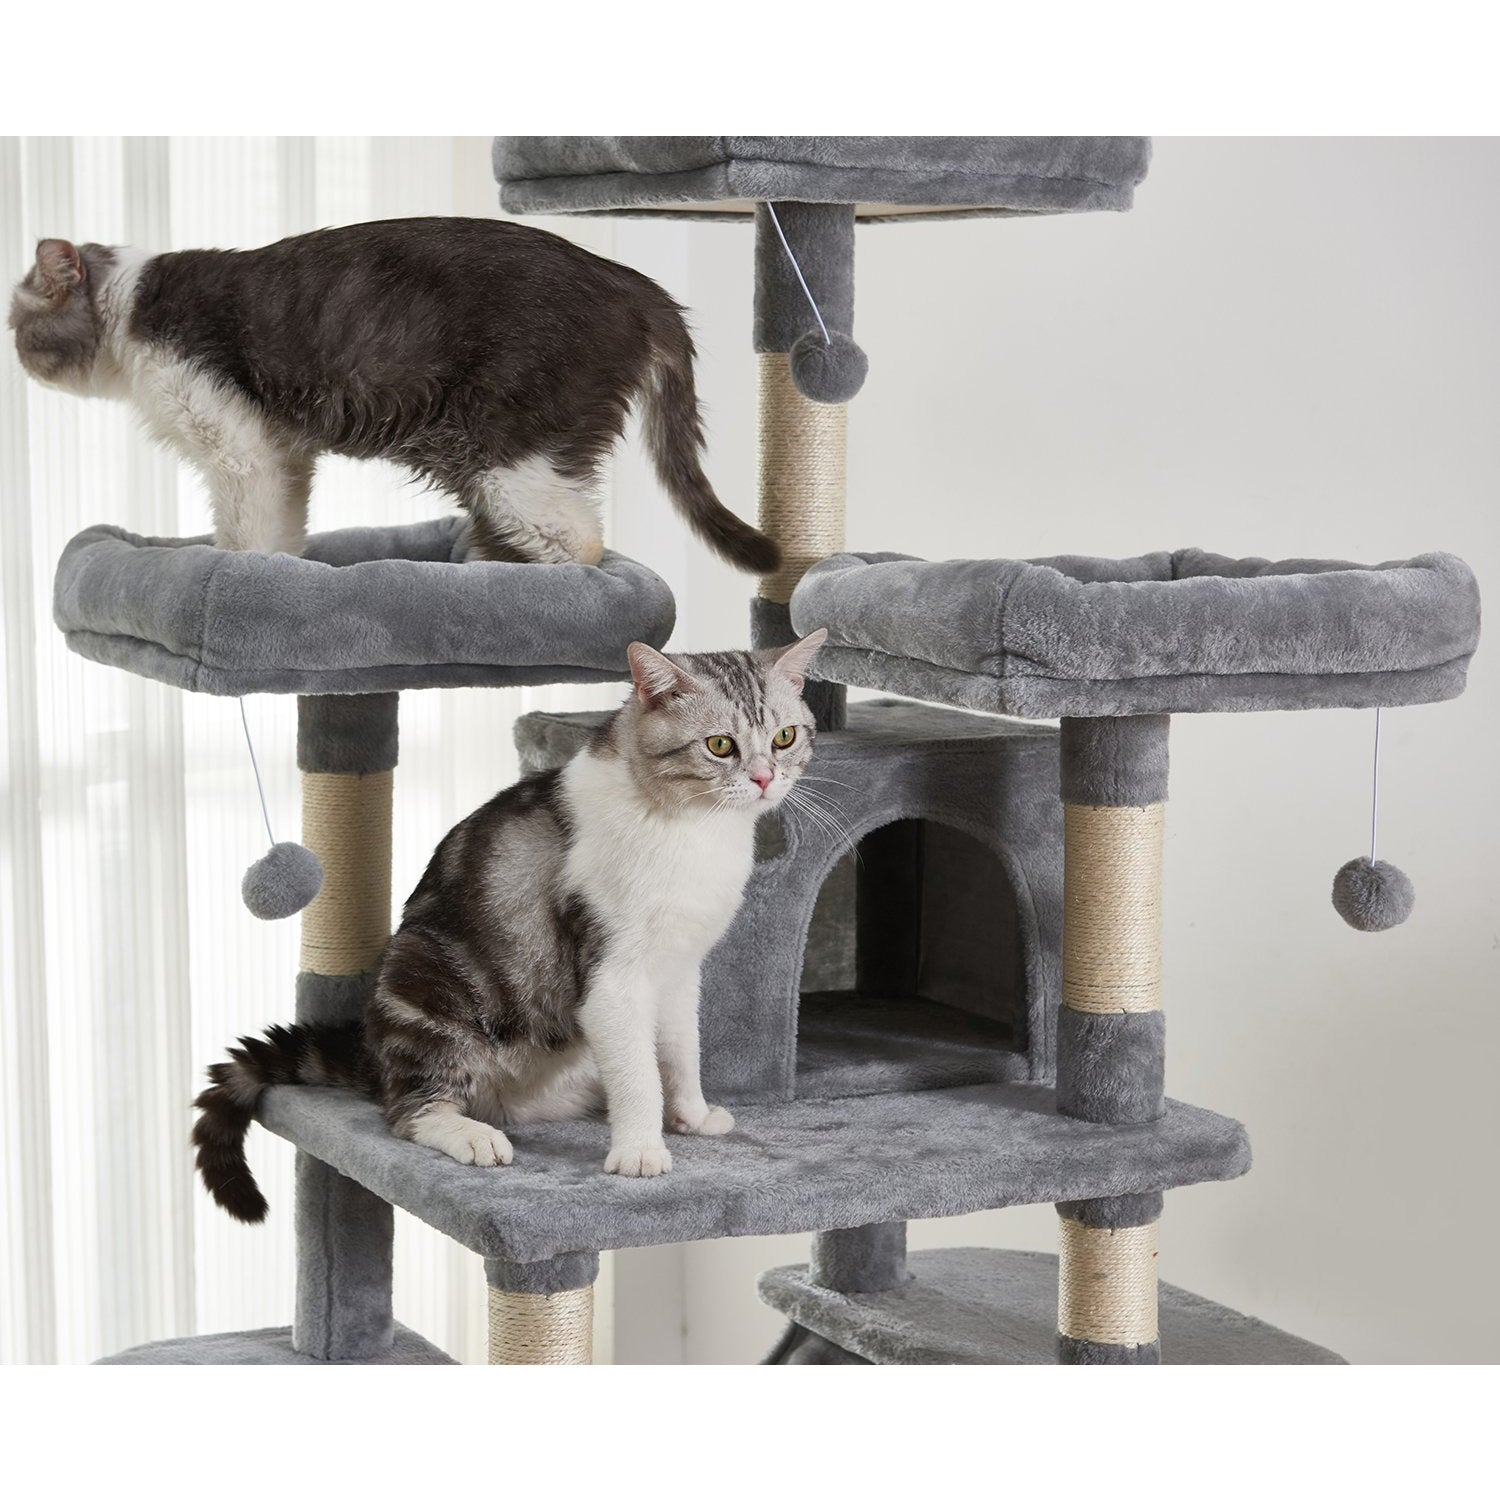 Dim Gray Large Cat Tree Condo with Sisal Scratching Posts Perches Houses Hammock, Cat Tower Furniture Kitty Activity Center Kitten Play House Gray W46918552